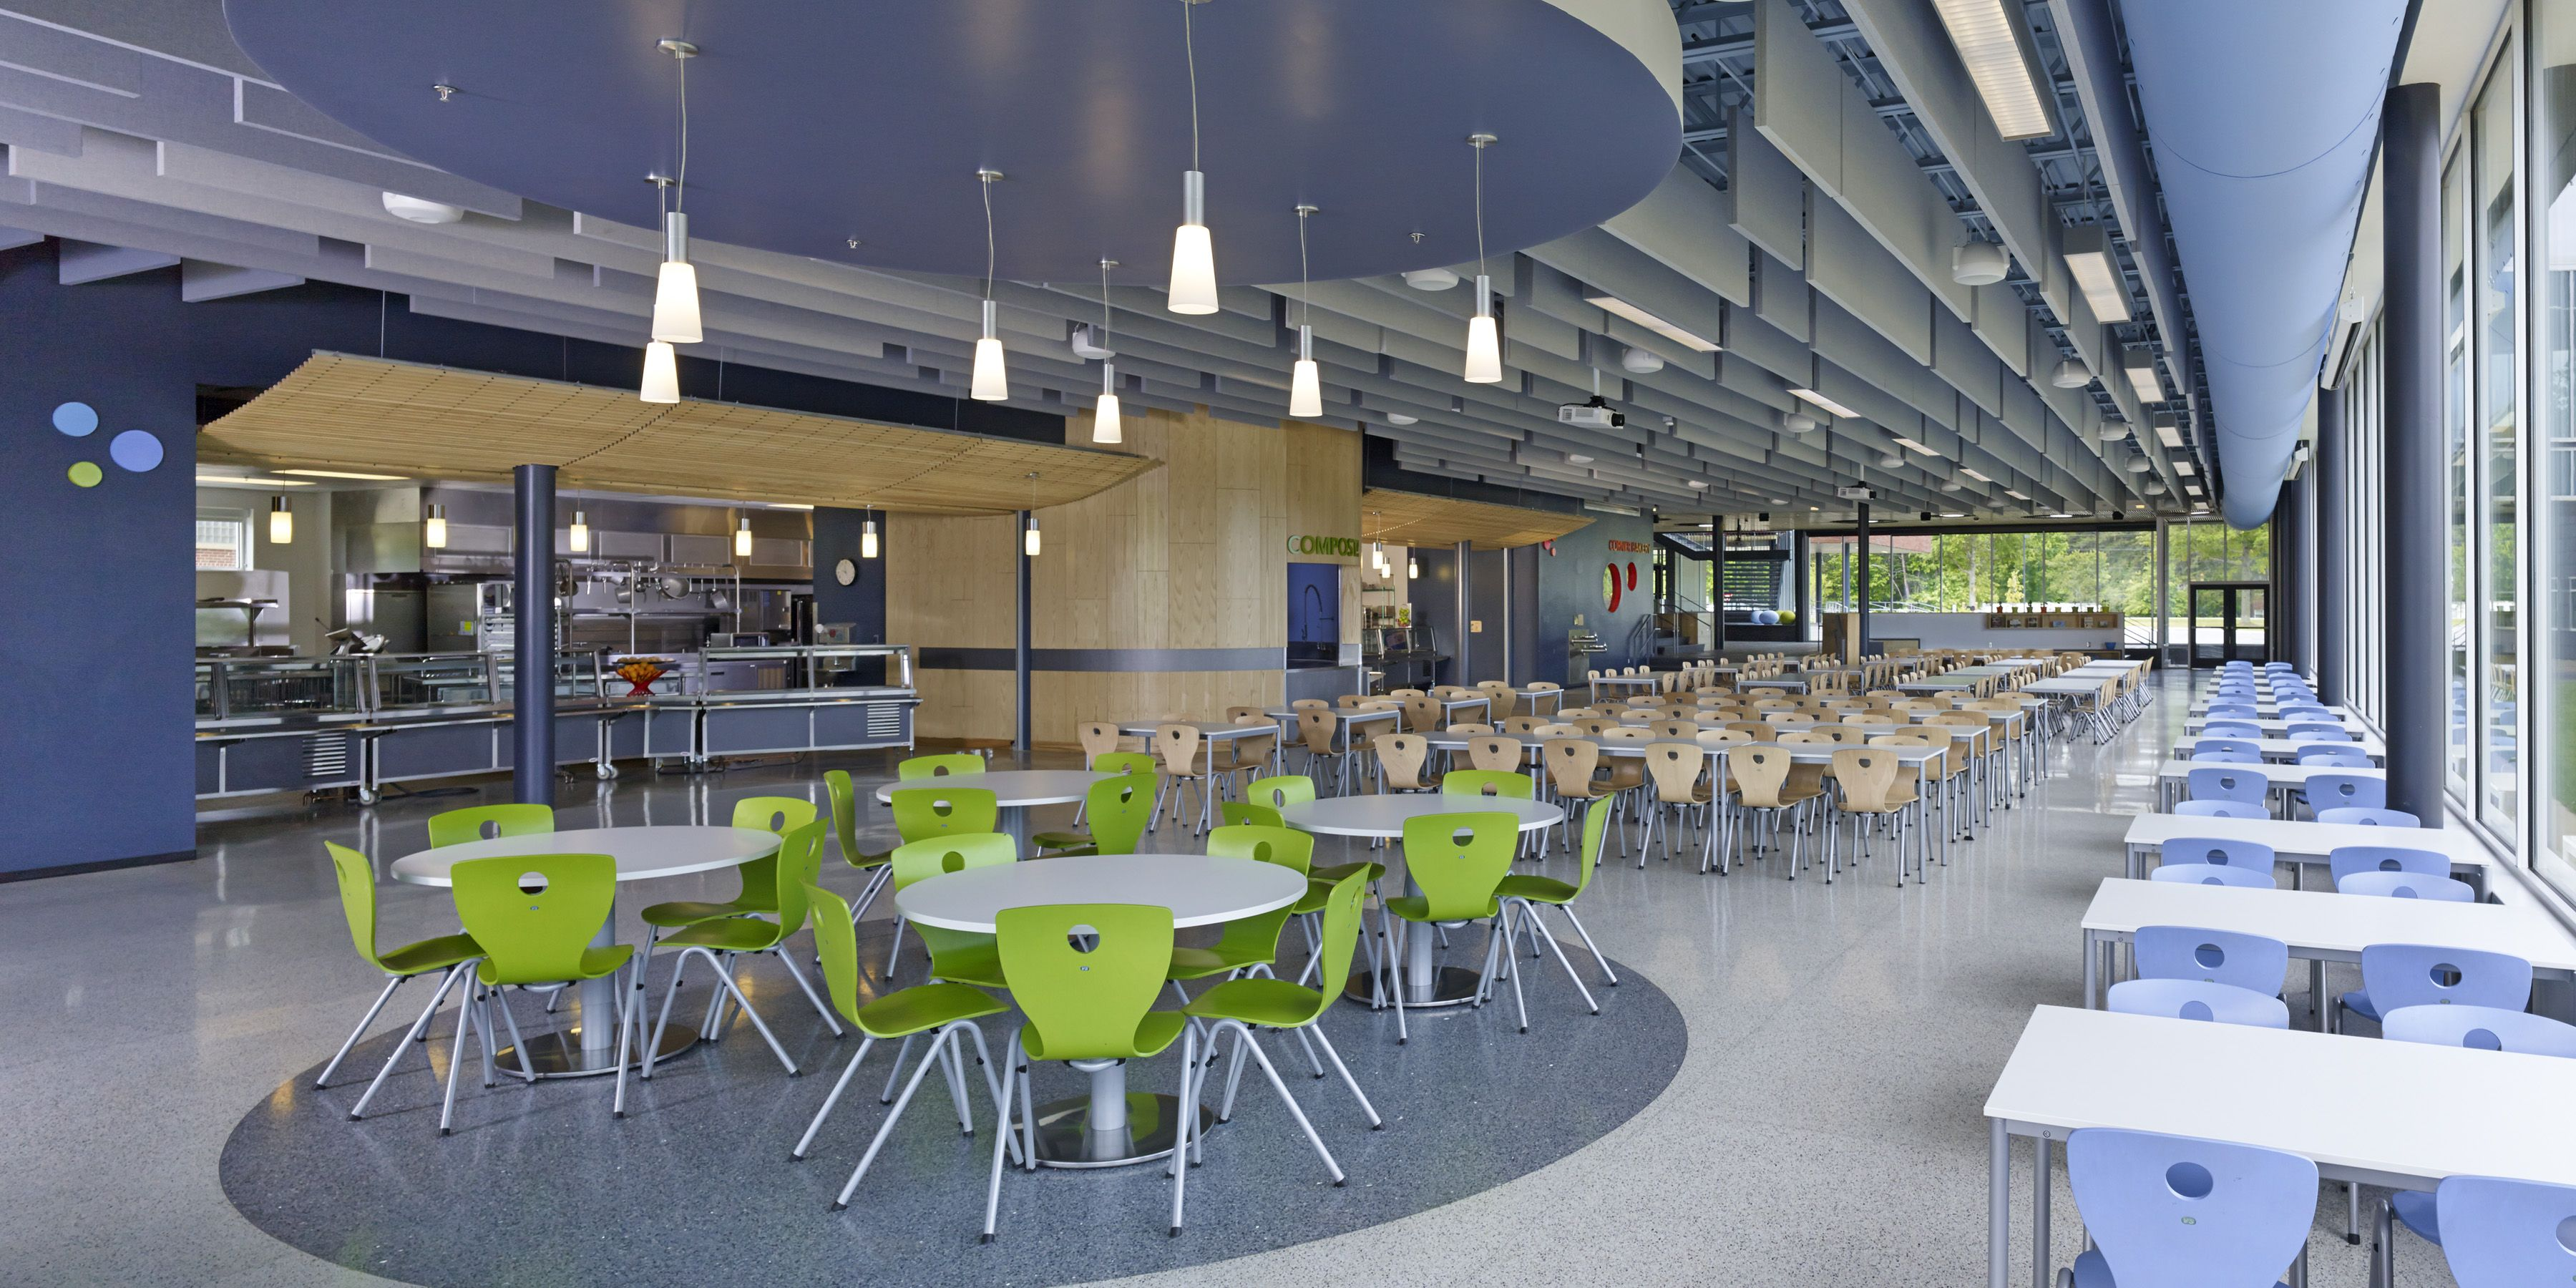 School Cafeteria Design Engaging Set Fireplace Fresh On School Cafeteria Design Muhs Dining